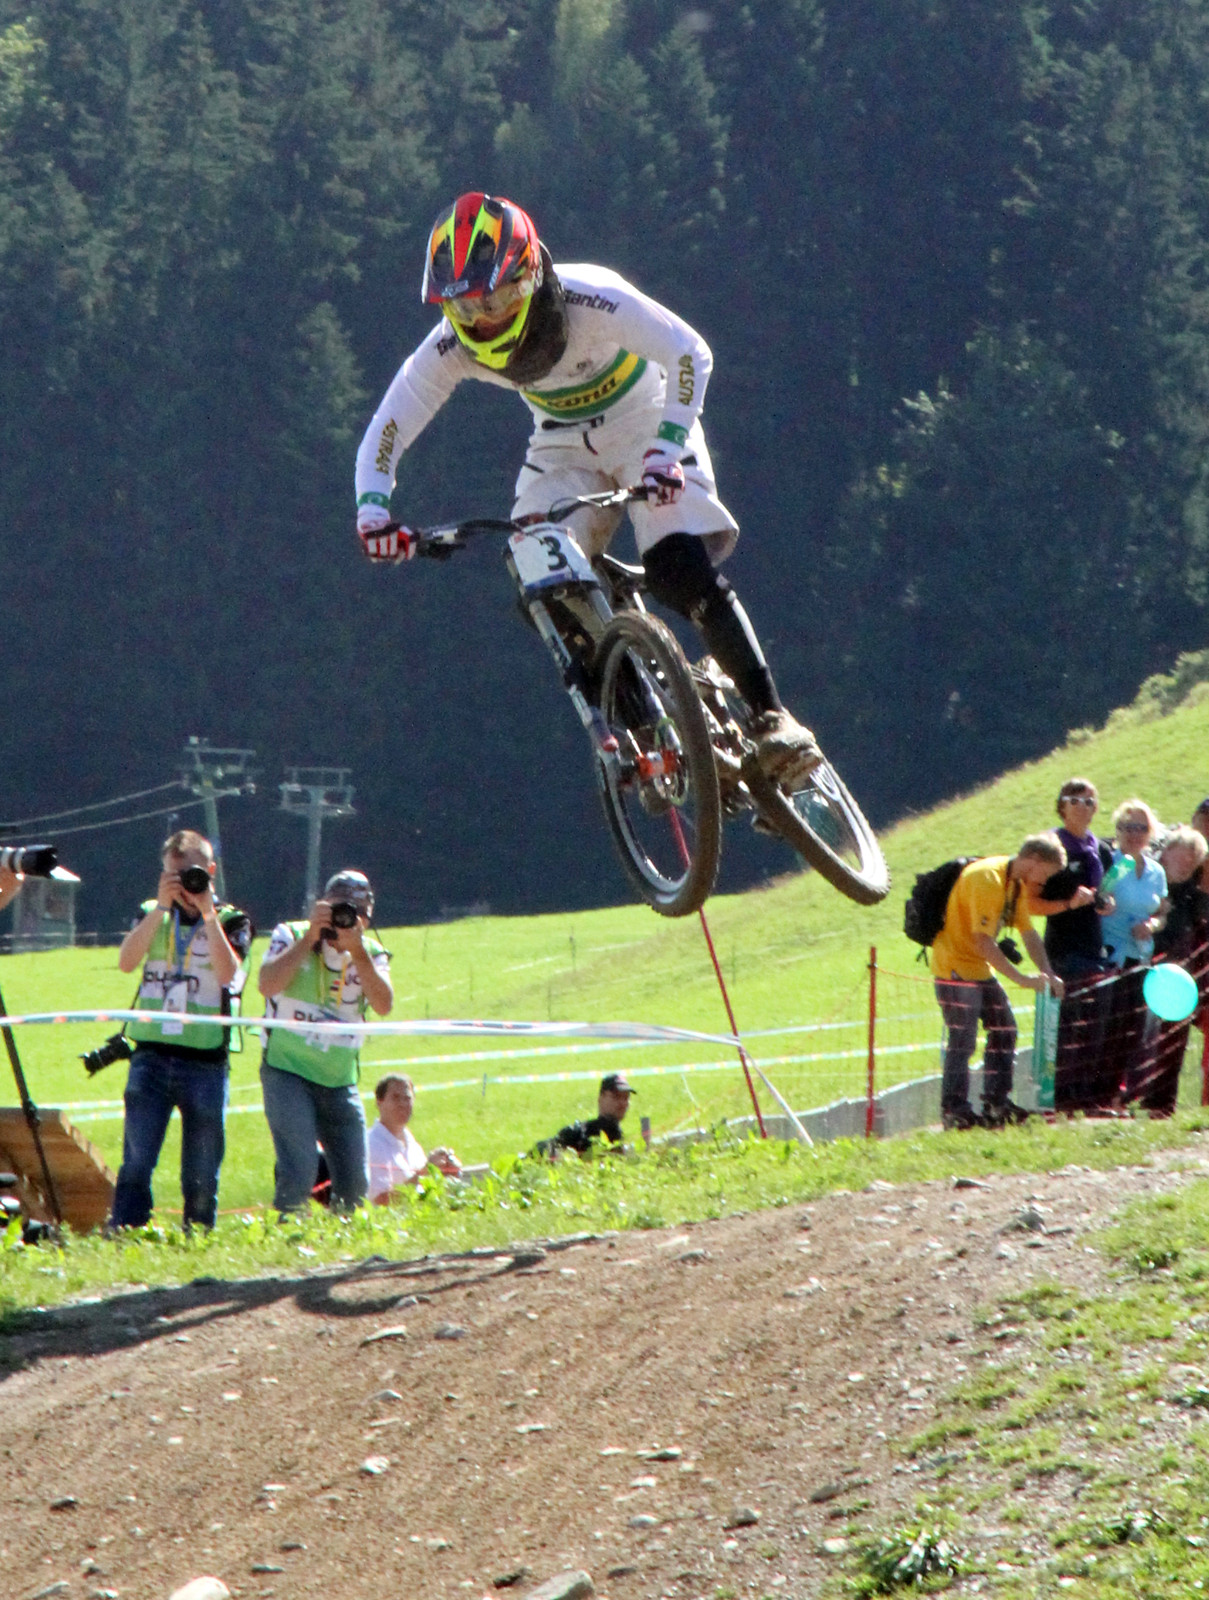 fearon - The Gap - Mountain Biking Pictures - Vital MTB